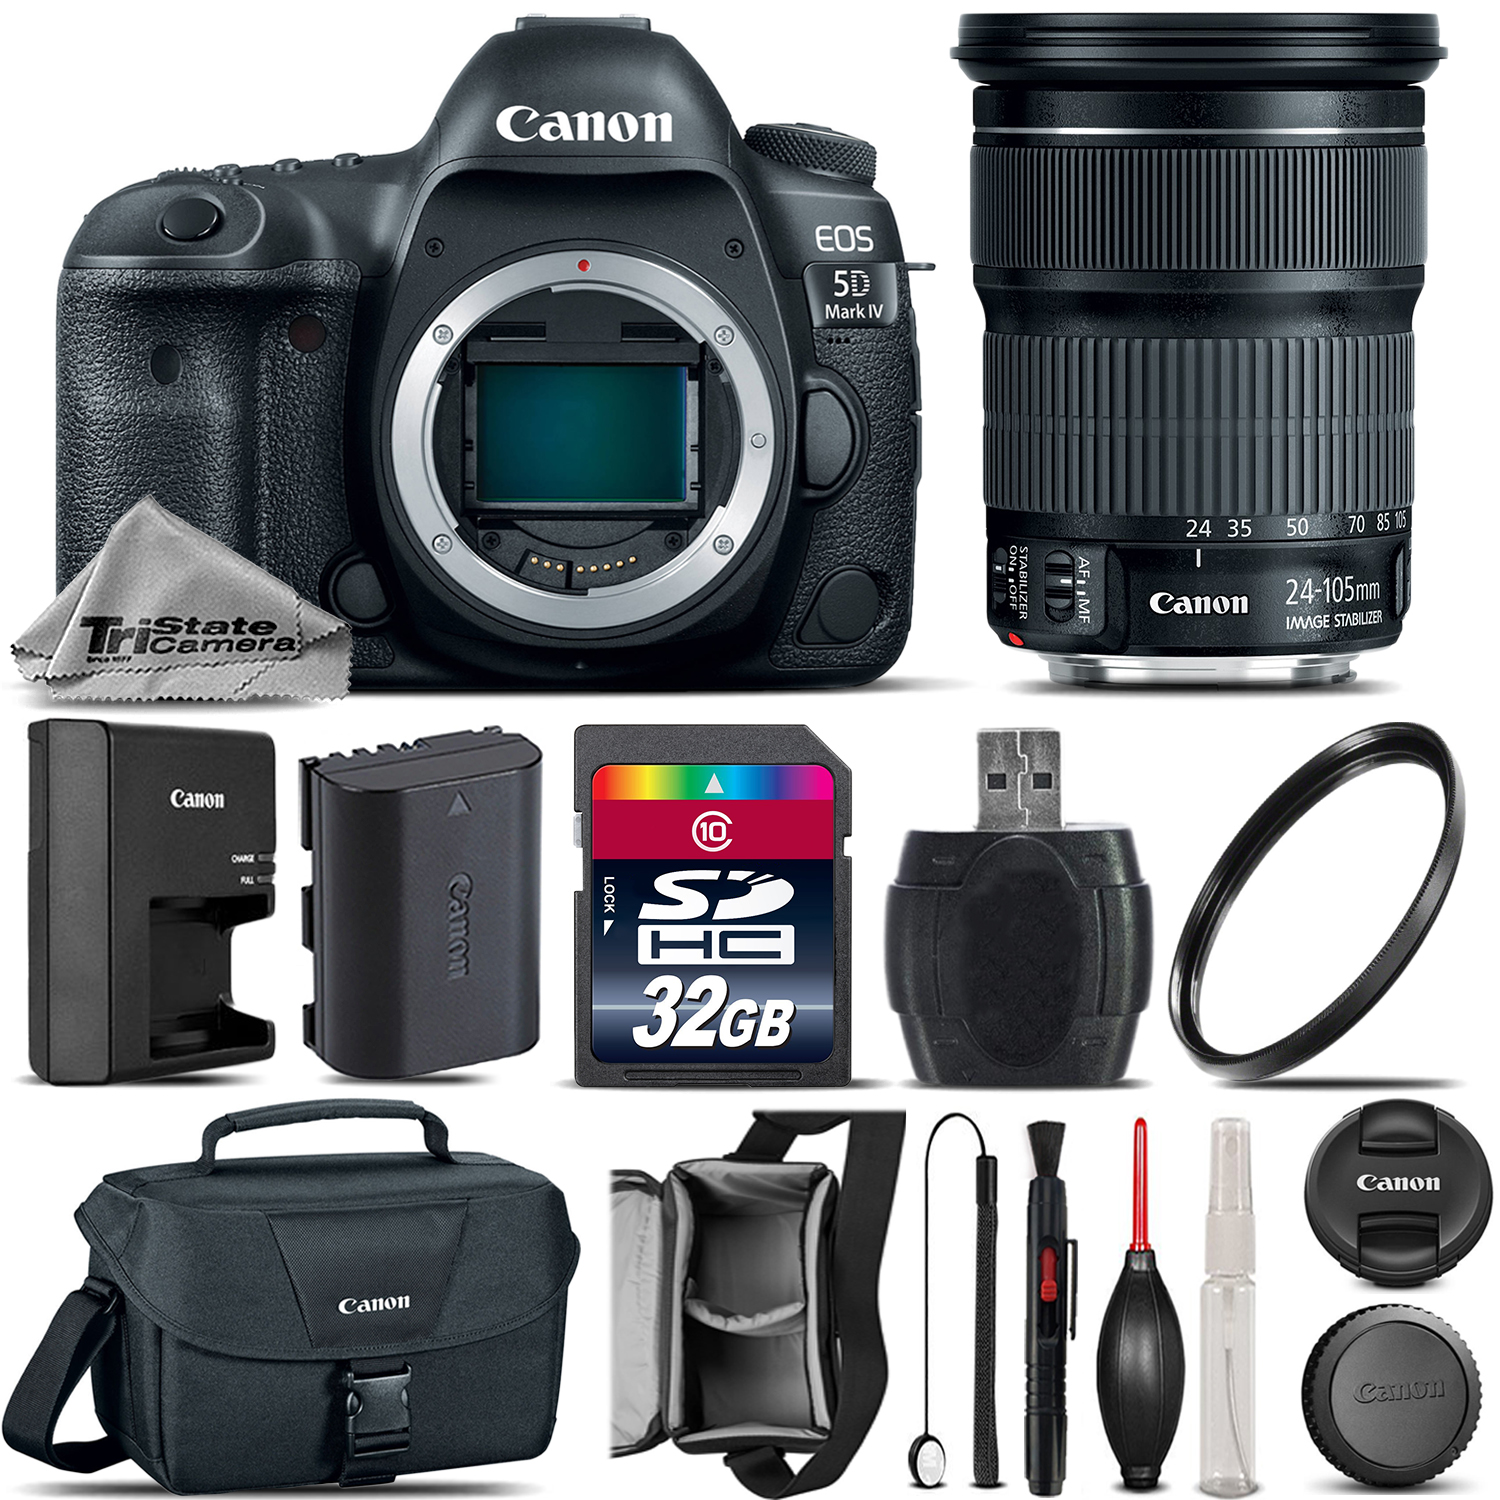 EOS 5D Mark IV Full Frame Camera + 24-105mm IS STM + Canon Bag - 32GB Kit *FREE SHIPPING*